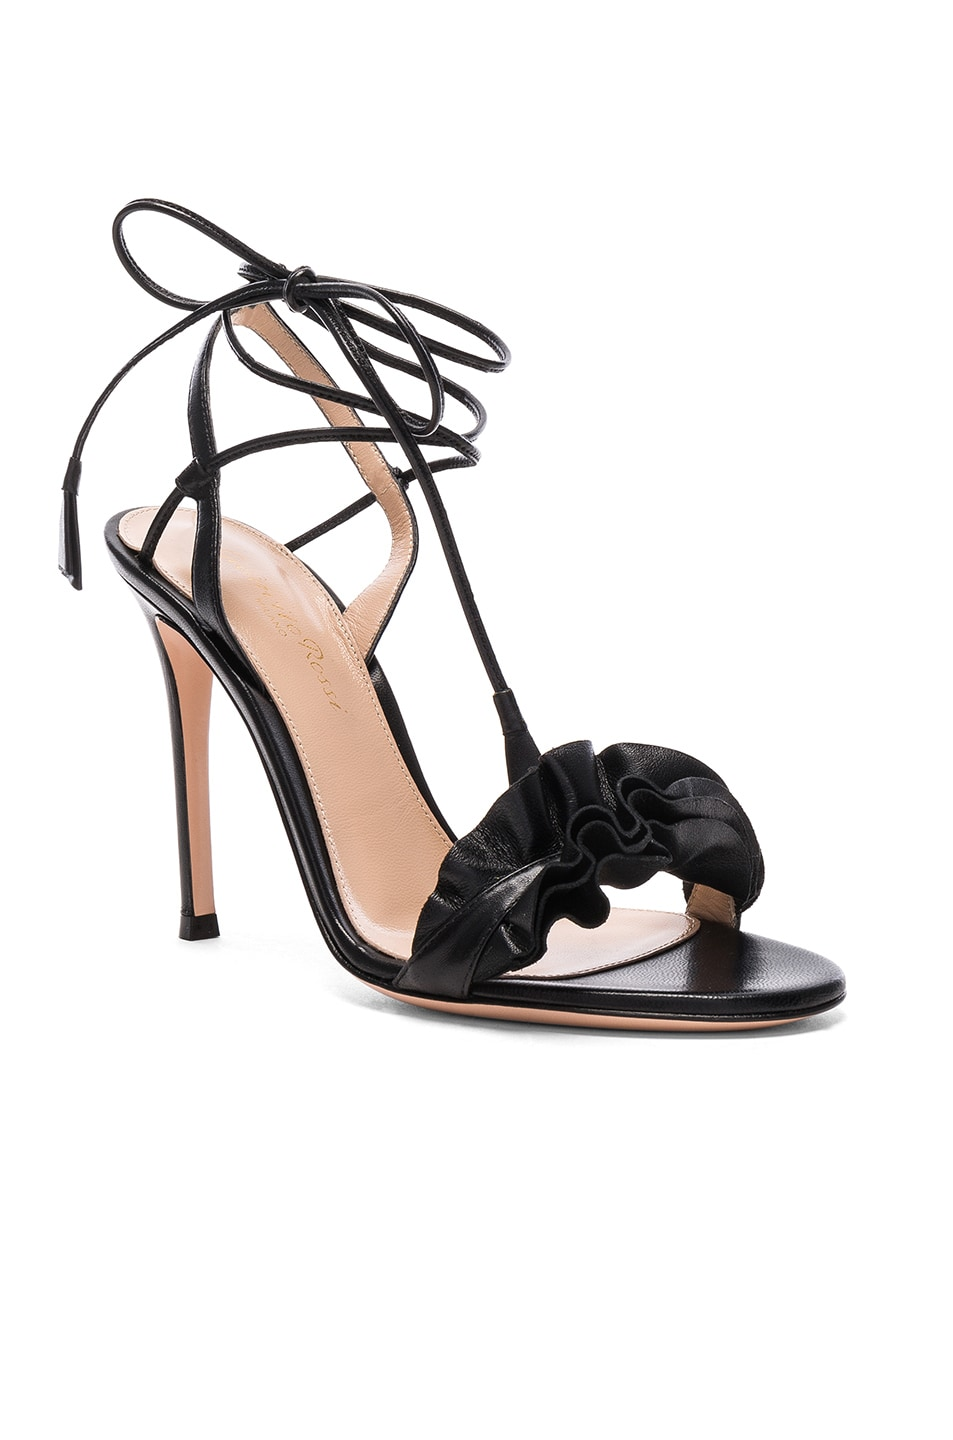 Image 2 of Gianvito Rossi Leather Ruffle Heels in Black